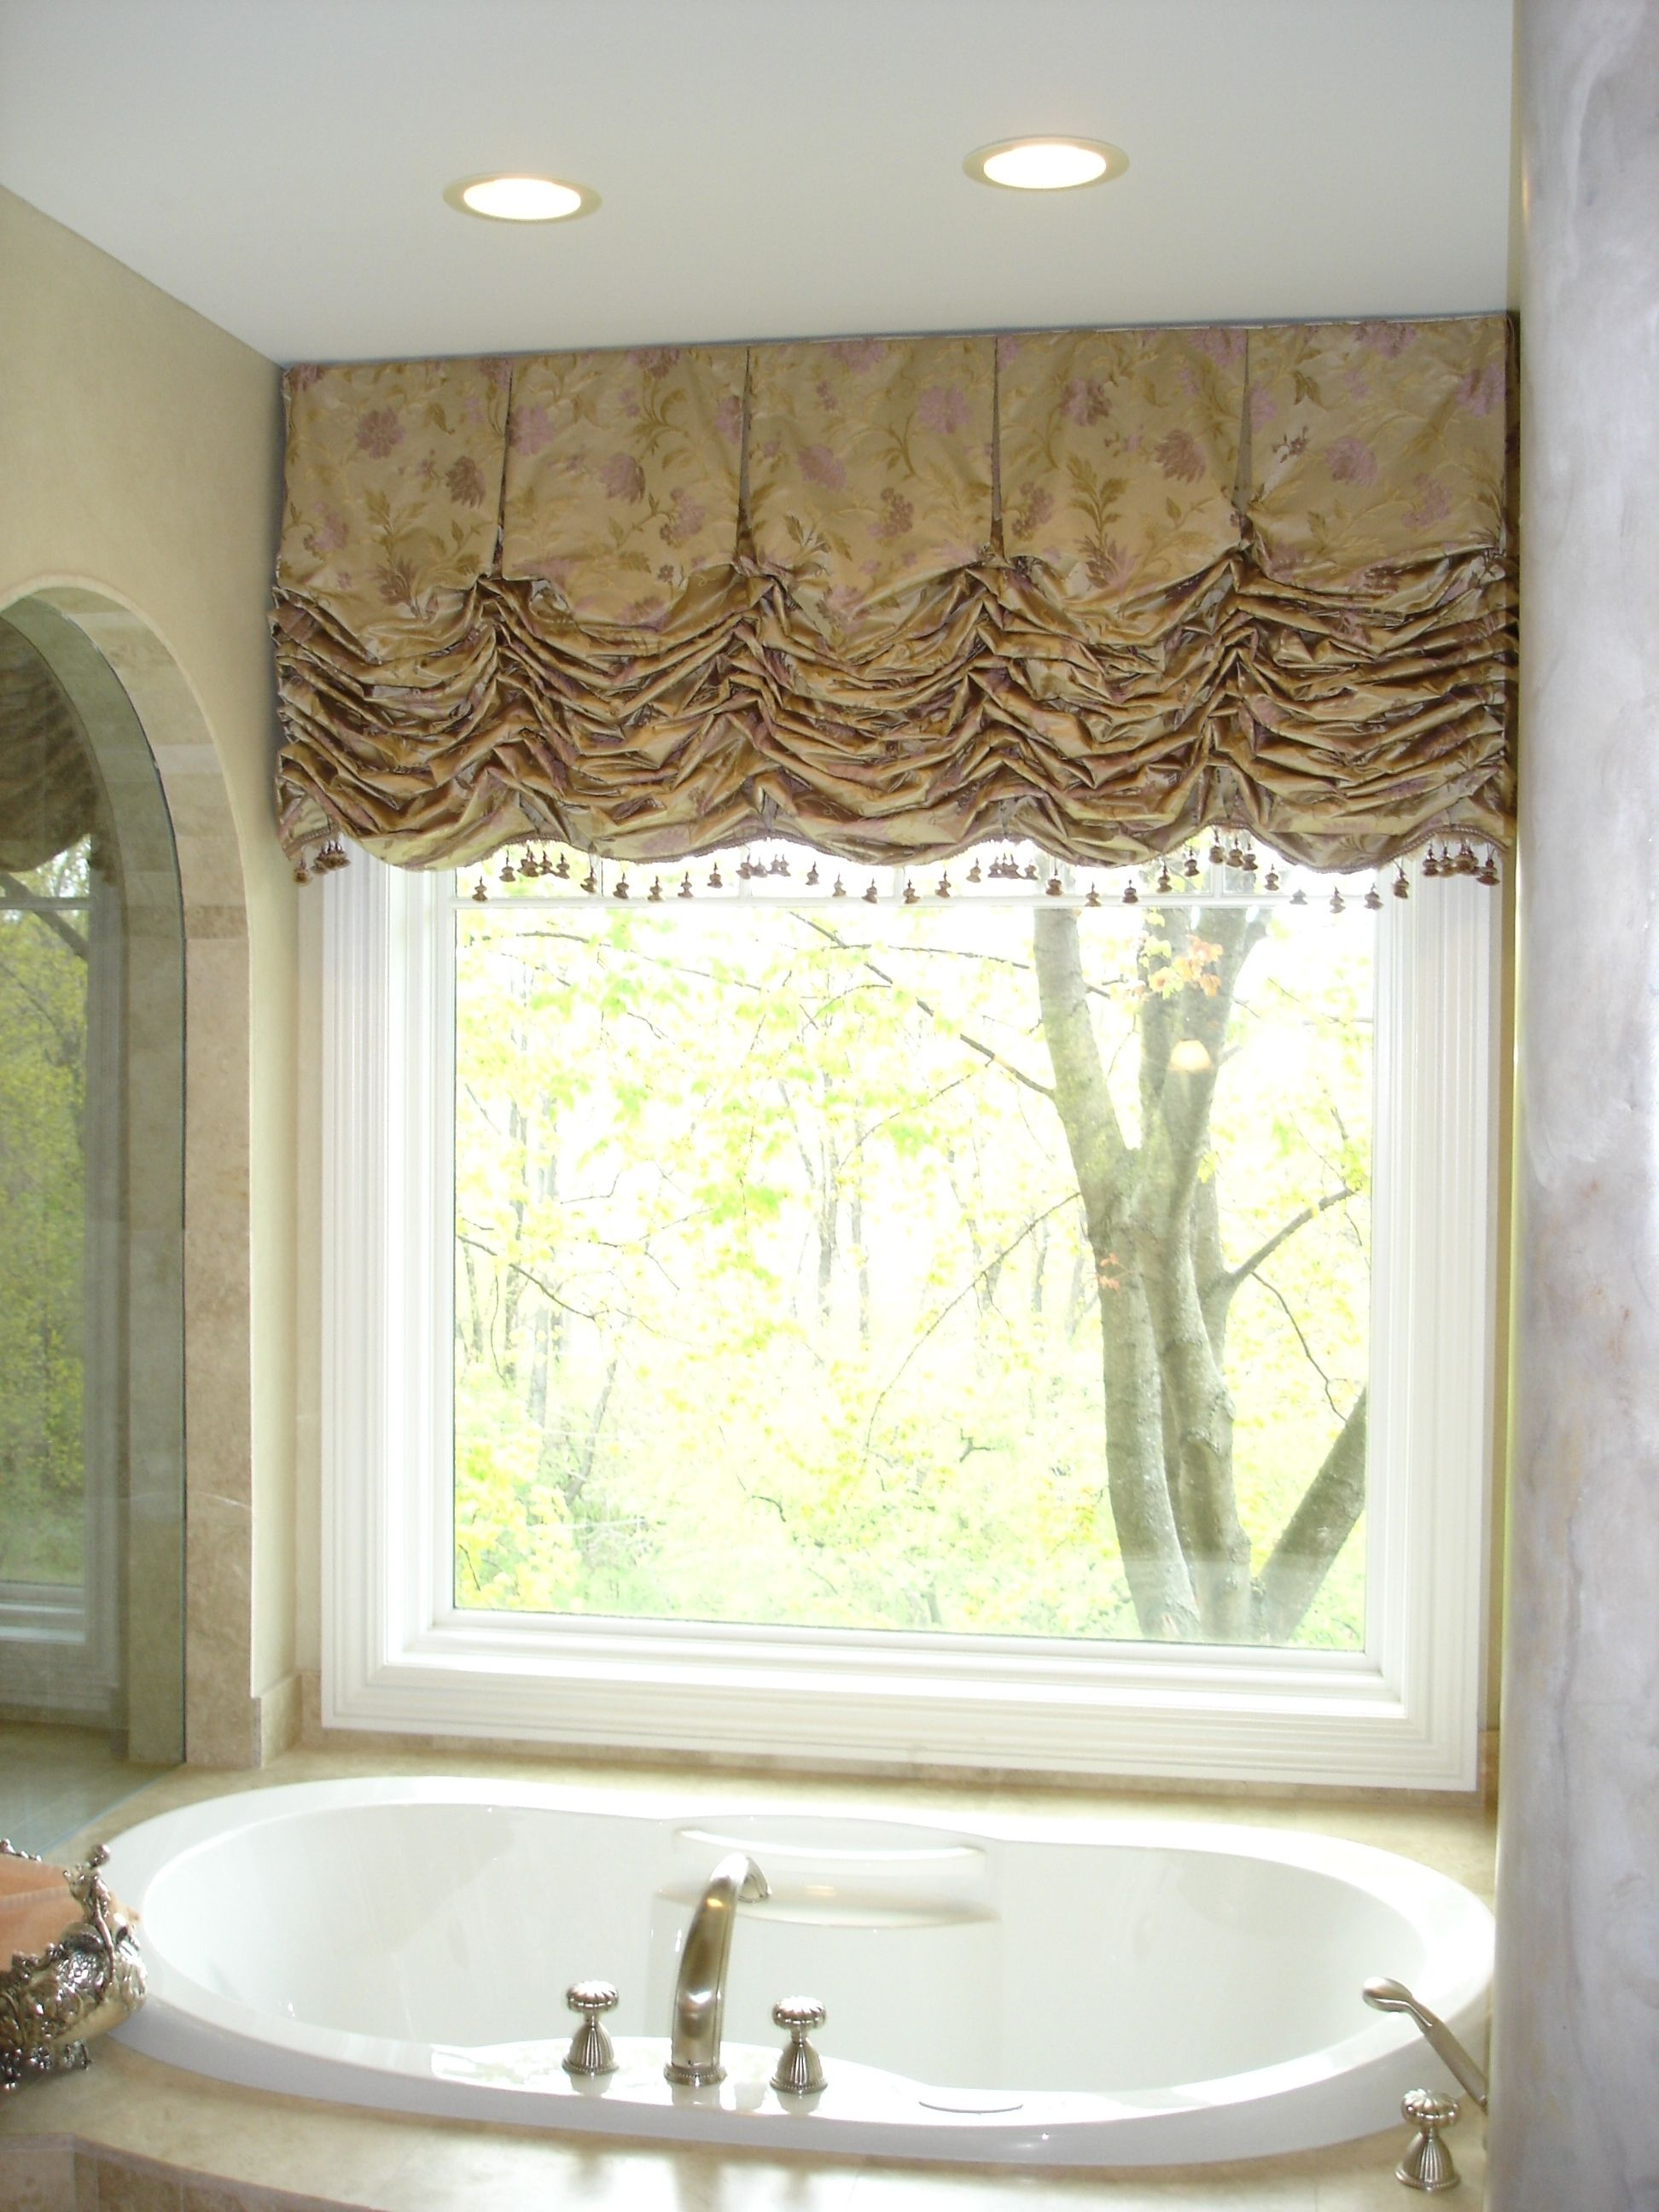 basement well ideas image valance window treatment curtains treatments berg san of decor